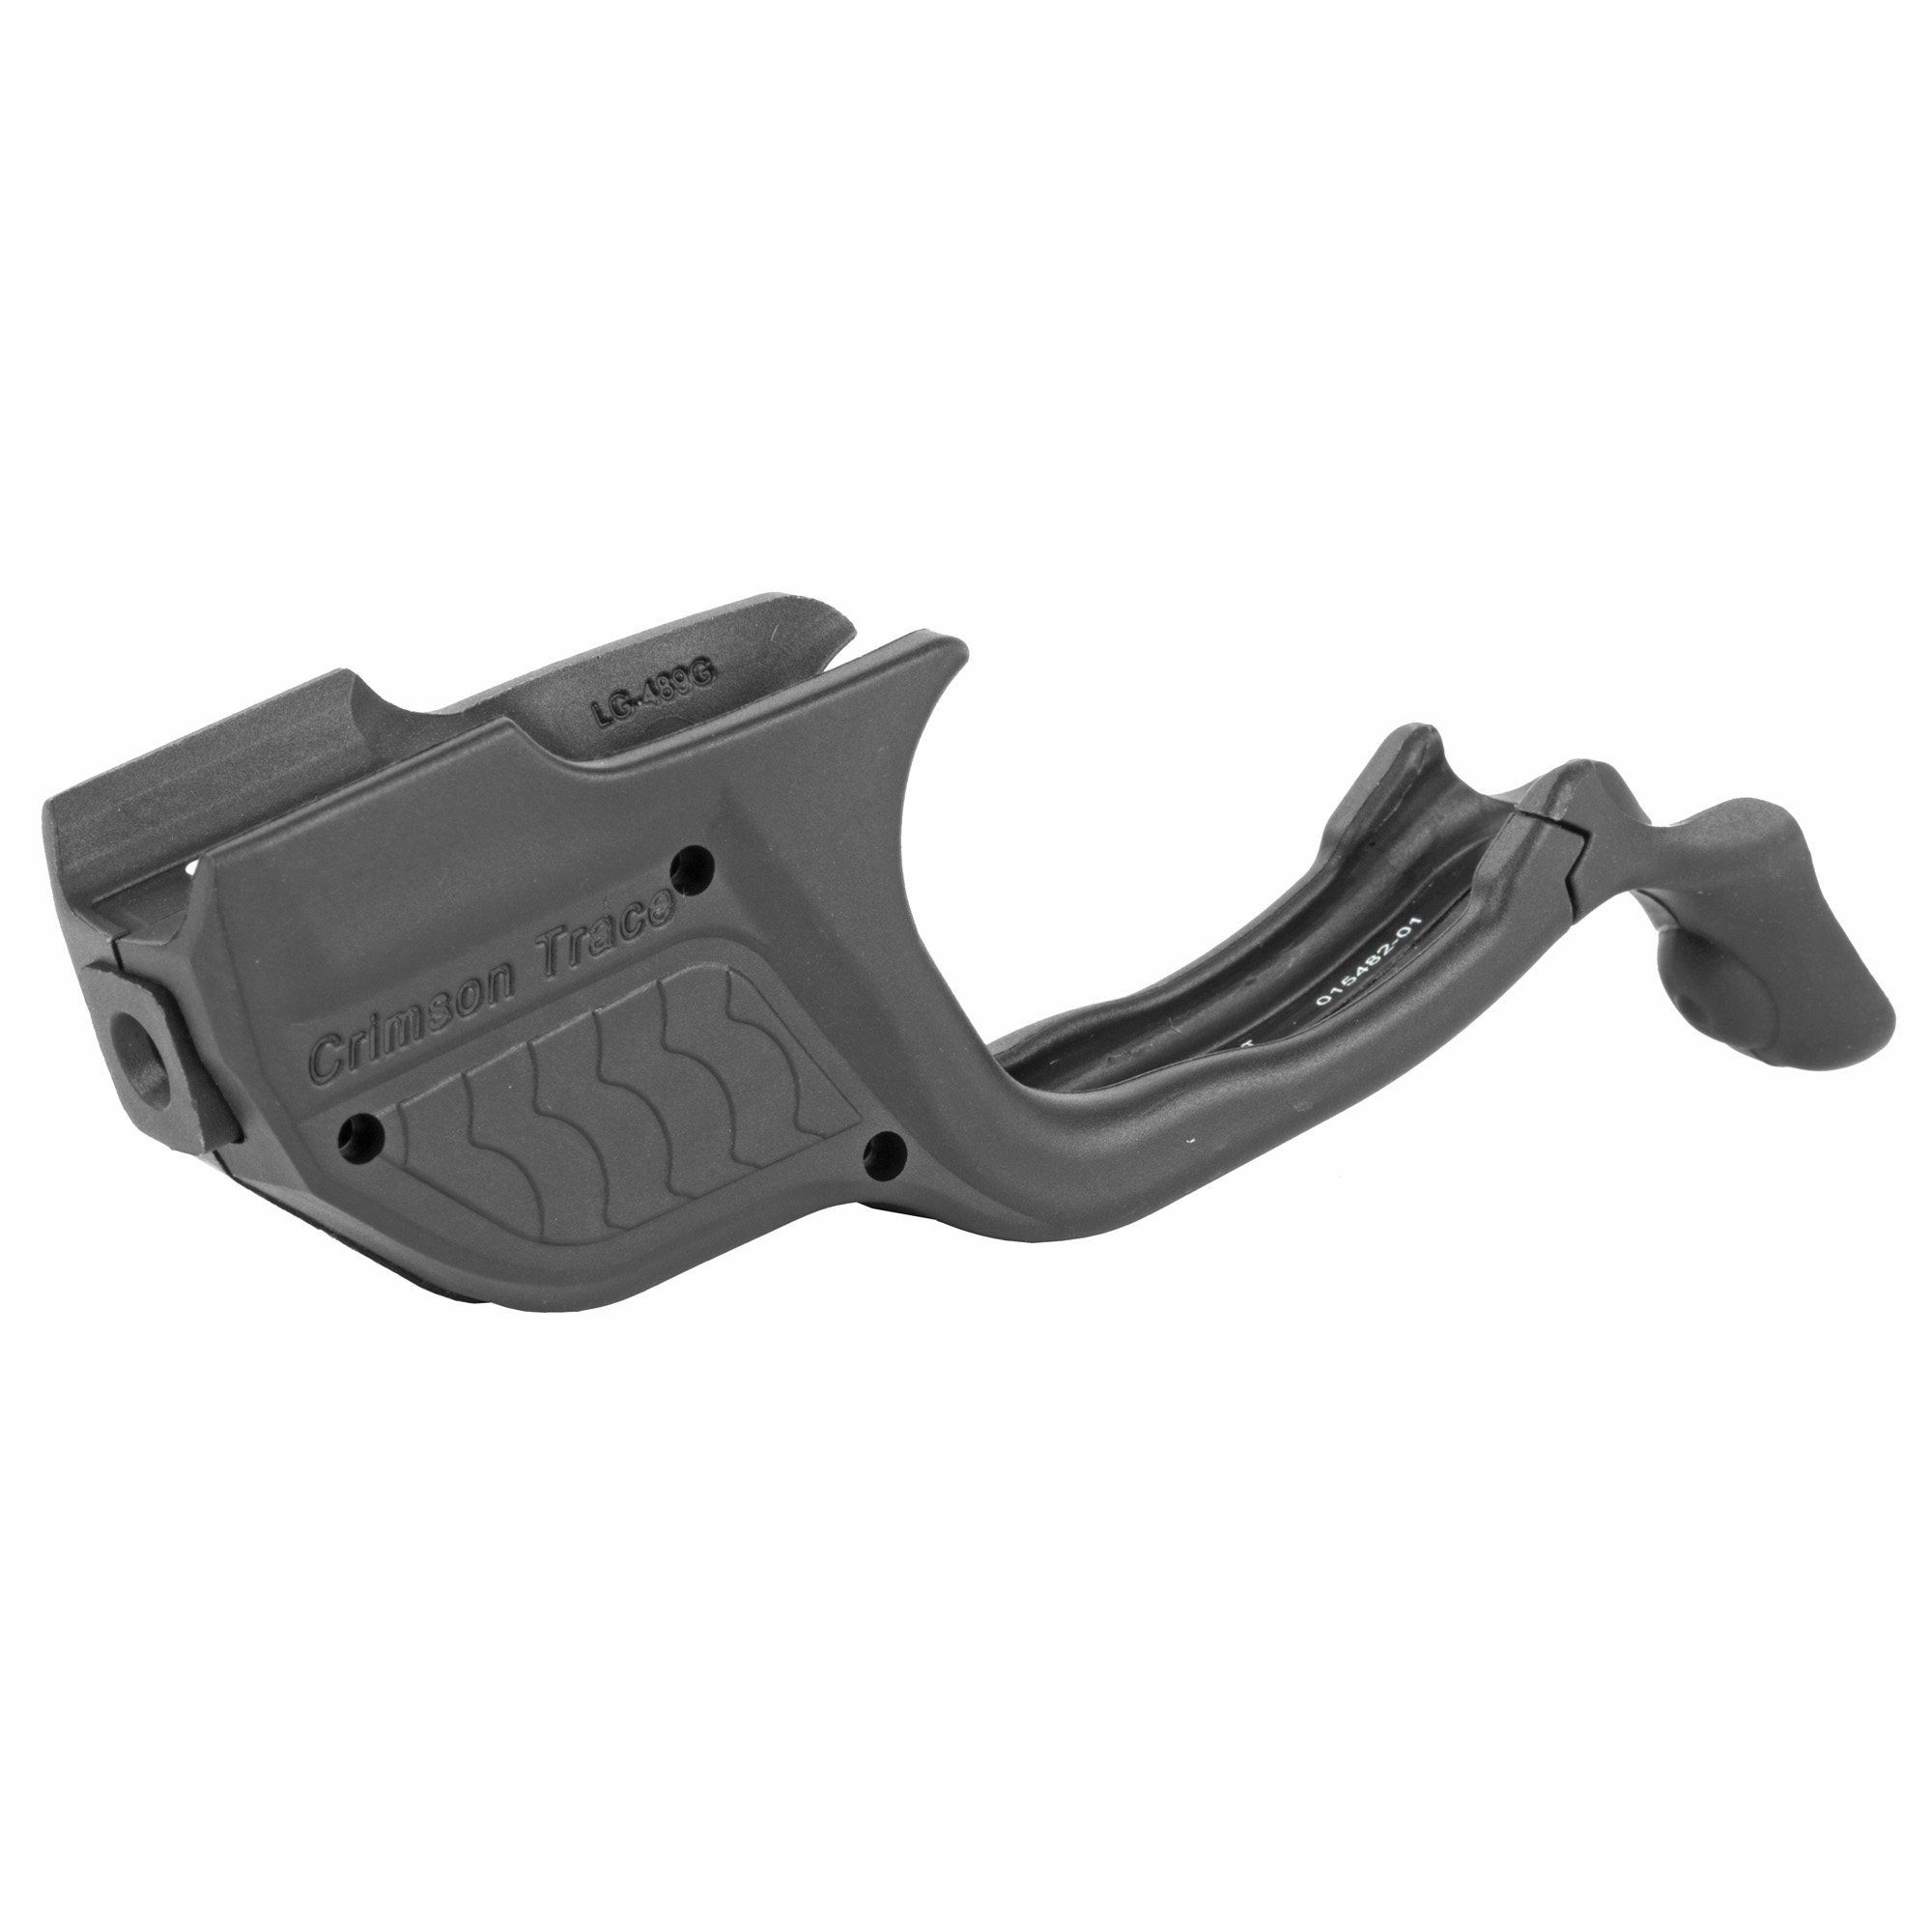 """The LG-489G is a seamlessly integrated green laser sight for Smith & Wesson's M&P Shield 9mm and .40 S&W concealed carry pistol. This Laserguard(R) is designed to match the unique design of the pistol"""" and features our patented Instinctive Activation(TM) - meaning the laser is activated when the gun is held in a natural firing grip. Quickly installed with no gunsmithing required"""" the LG-489G is also fully adjustable for windage and elevation. Features a powerful green laser diode for improved laser targeting in all lighting conditions."""